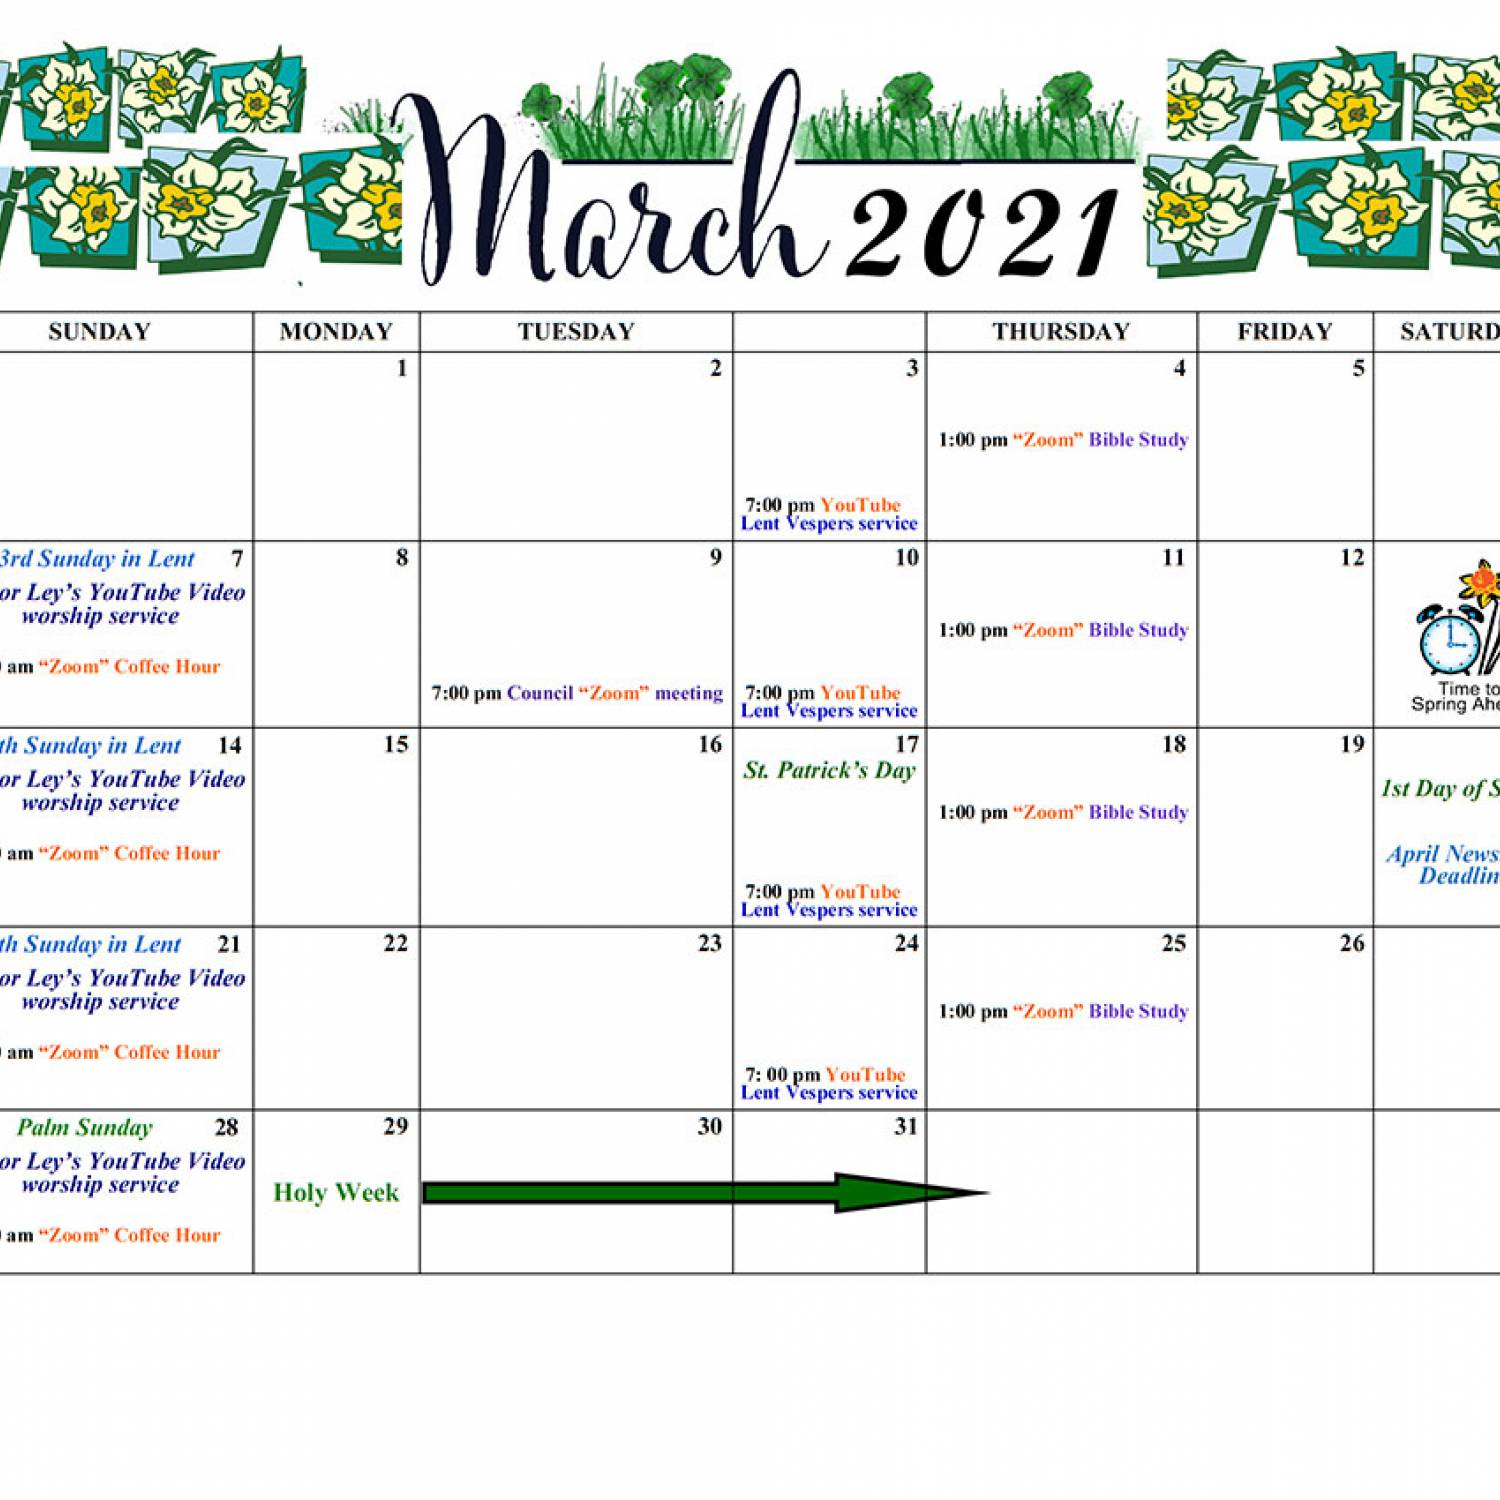 March 2021 Events Calendar